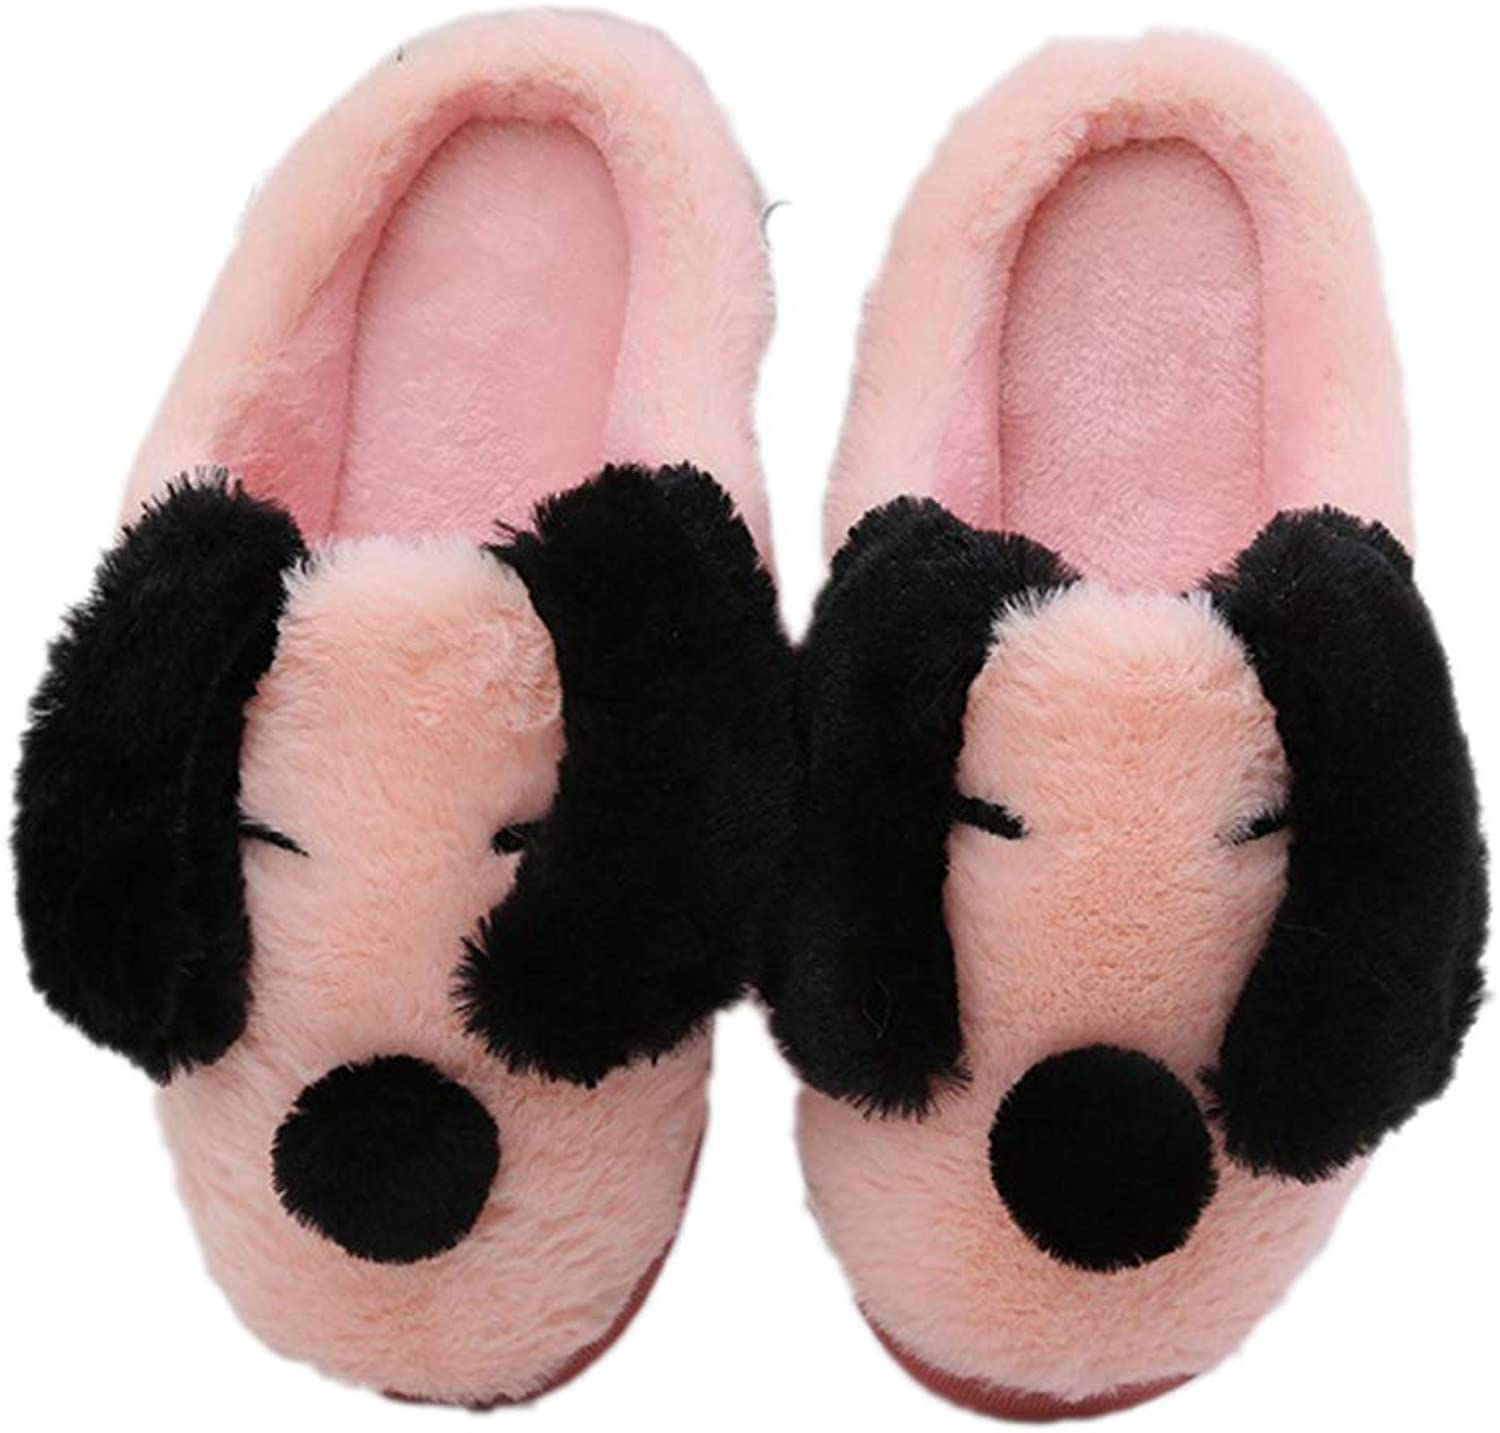 Nafanio Cute Animal Home Slippers Winter Warm Dog Plush House shoes Indoor Bedroom Soft Furry Cotton Flats